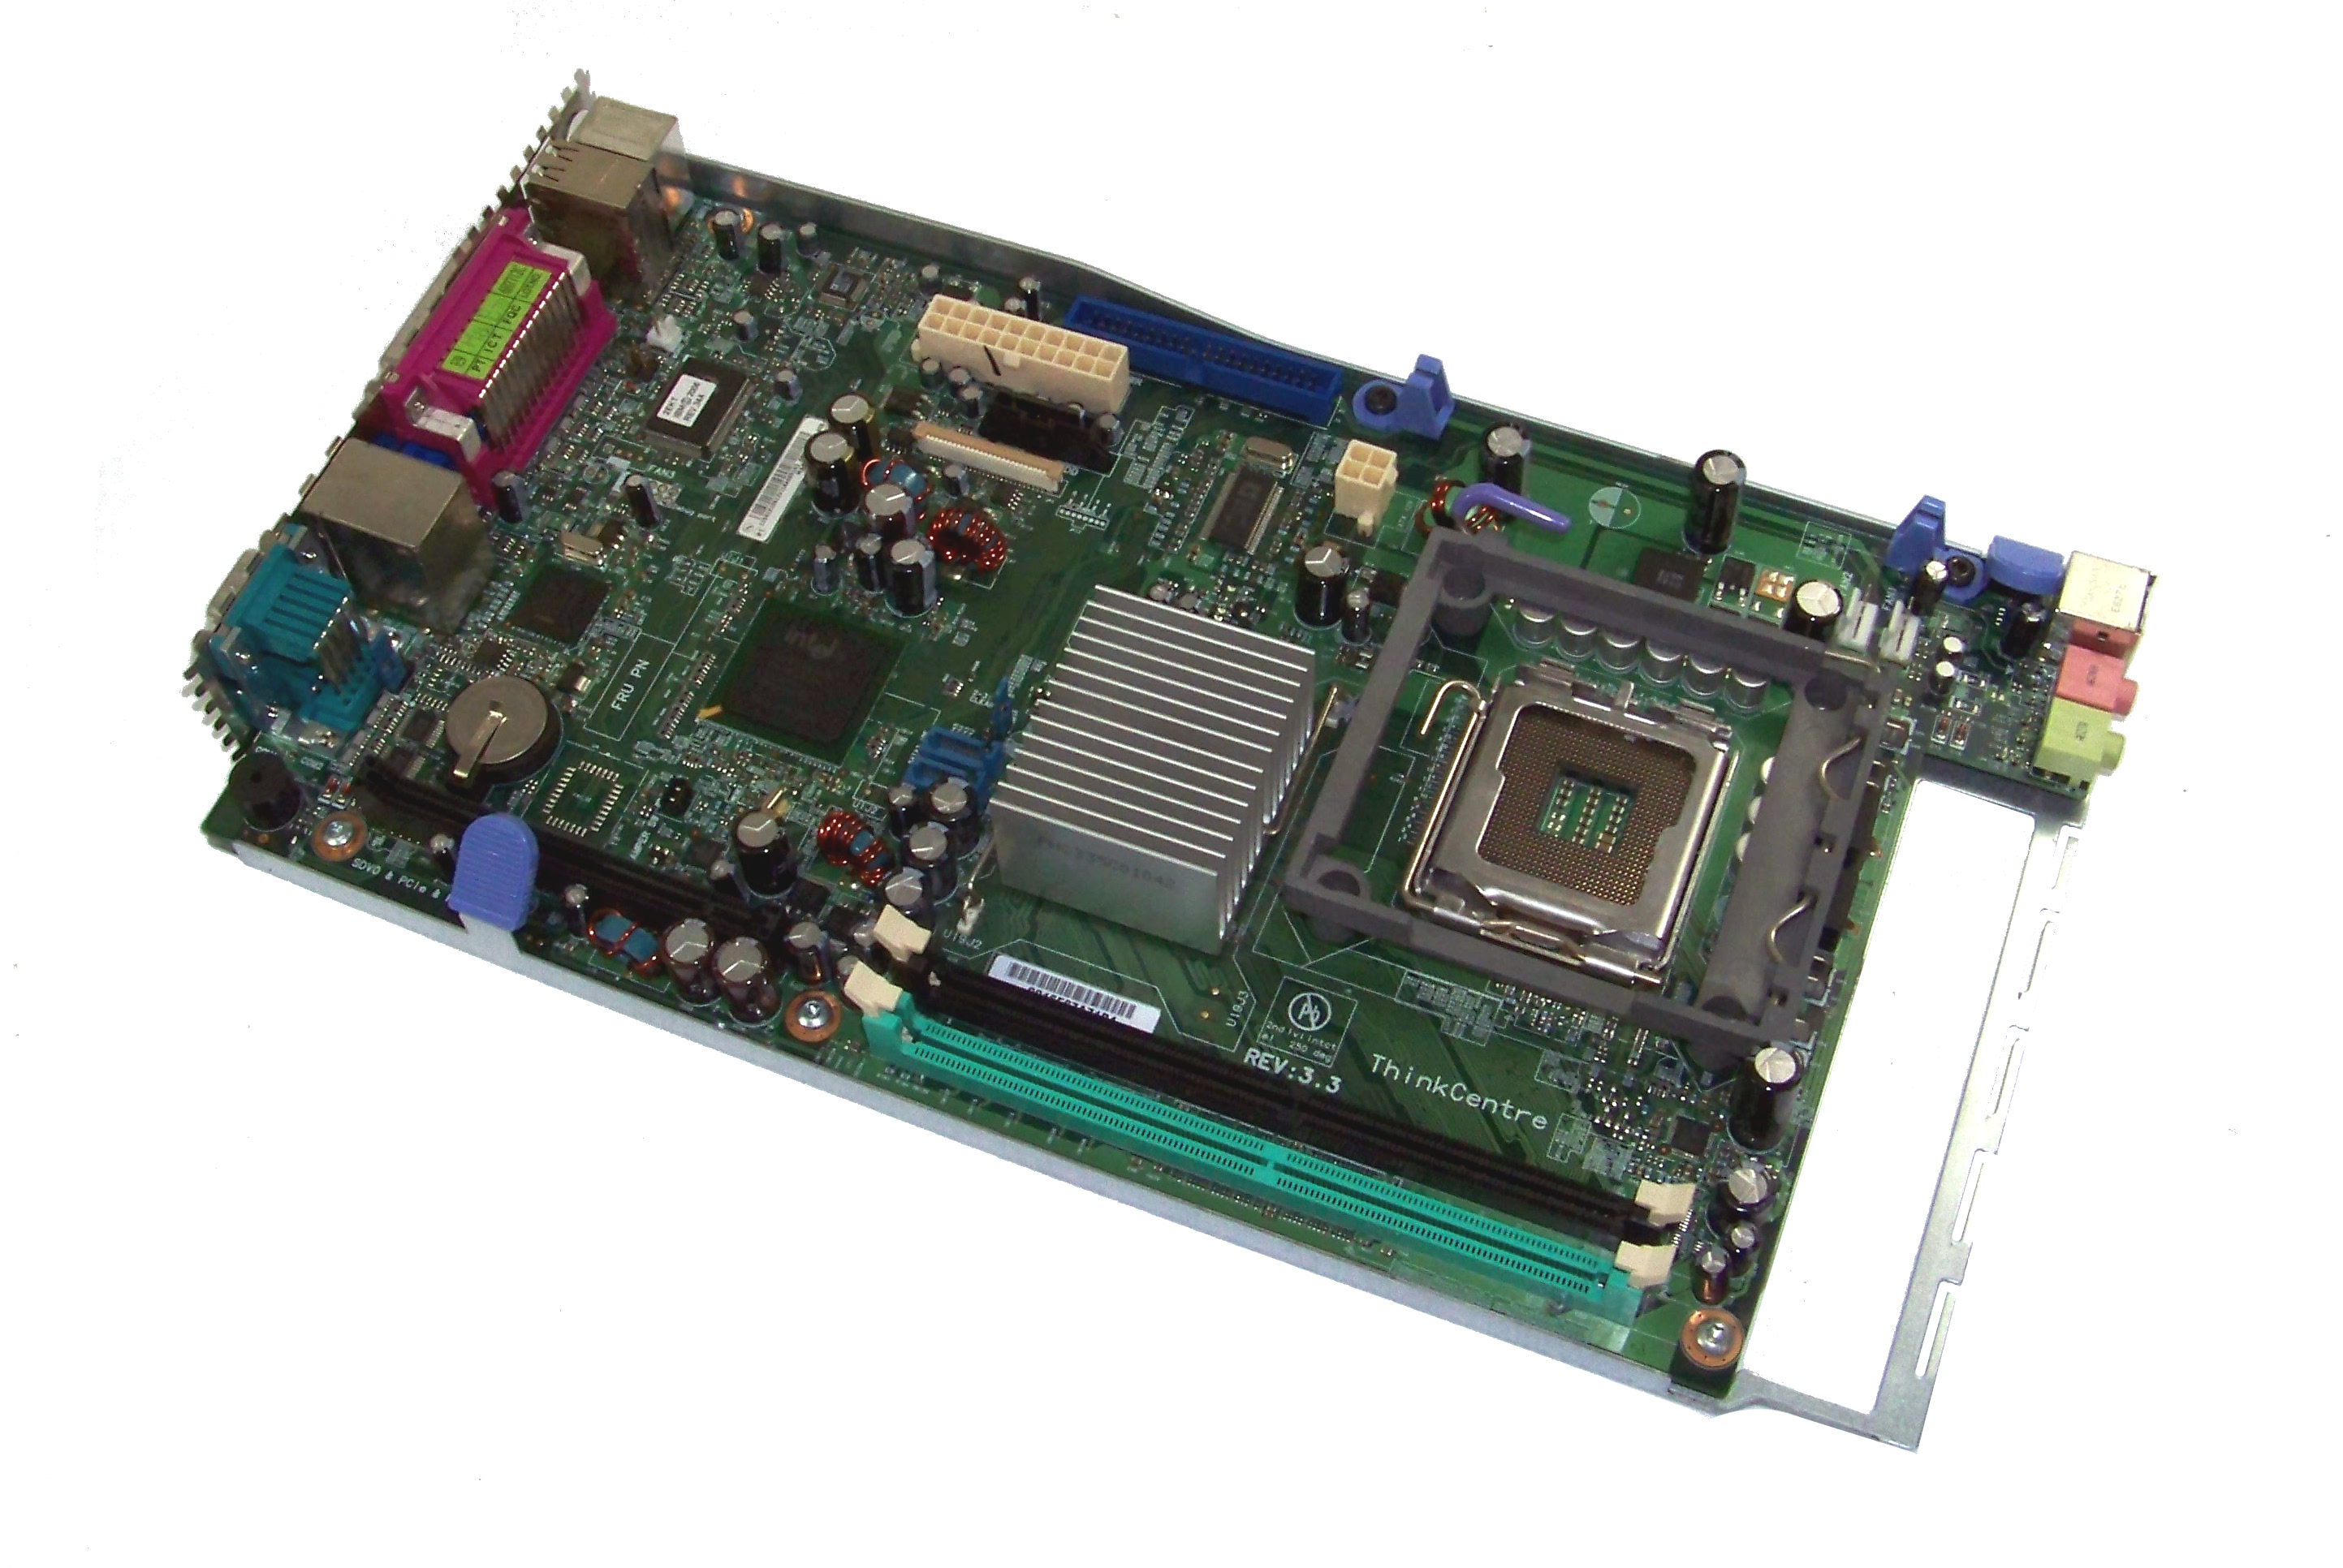 Details About IBM 41X1061 ThinkCentre M52 SFF Socket T LGA775 Motherboard